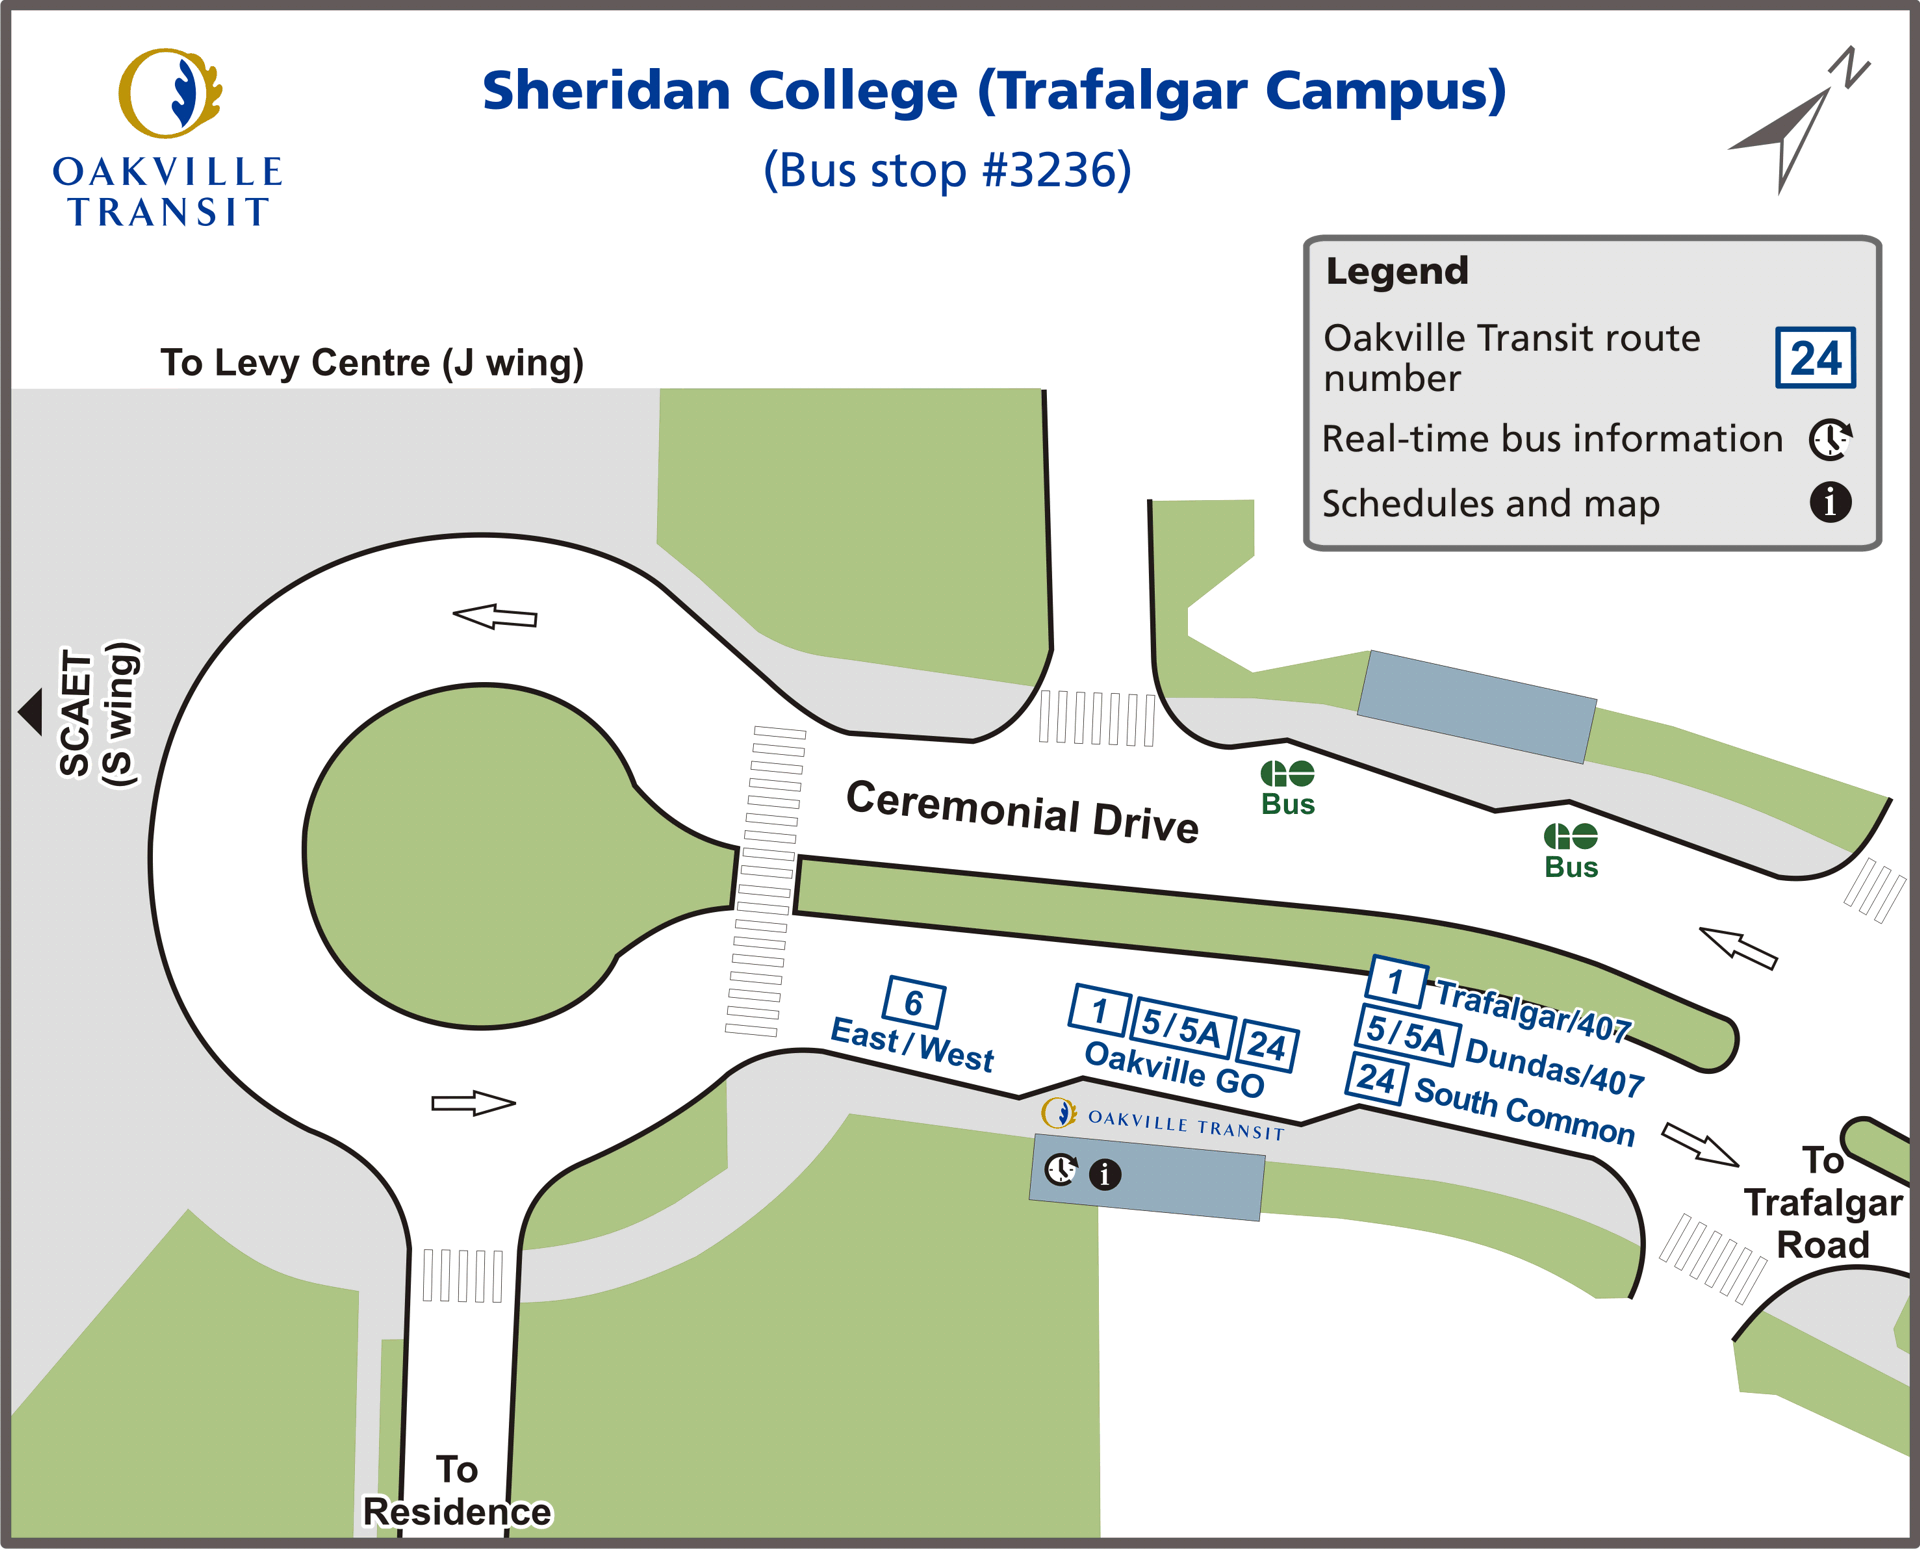 Sheridan College map